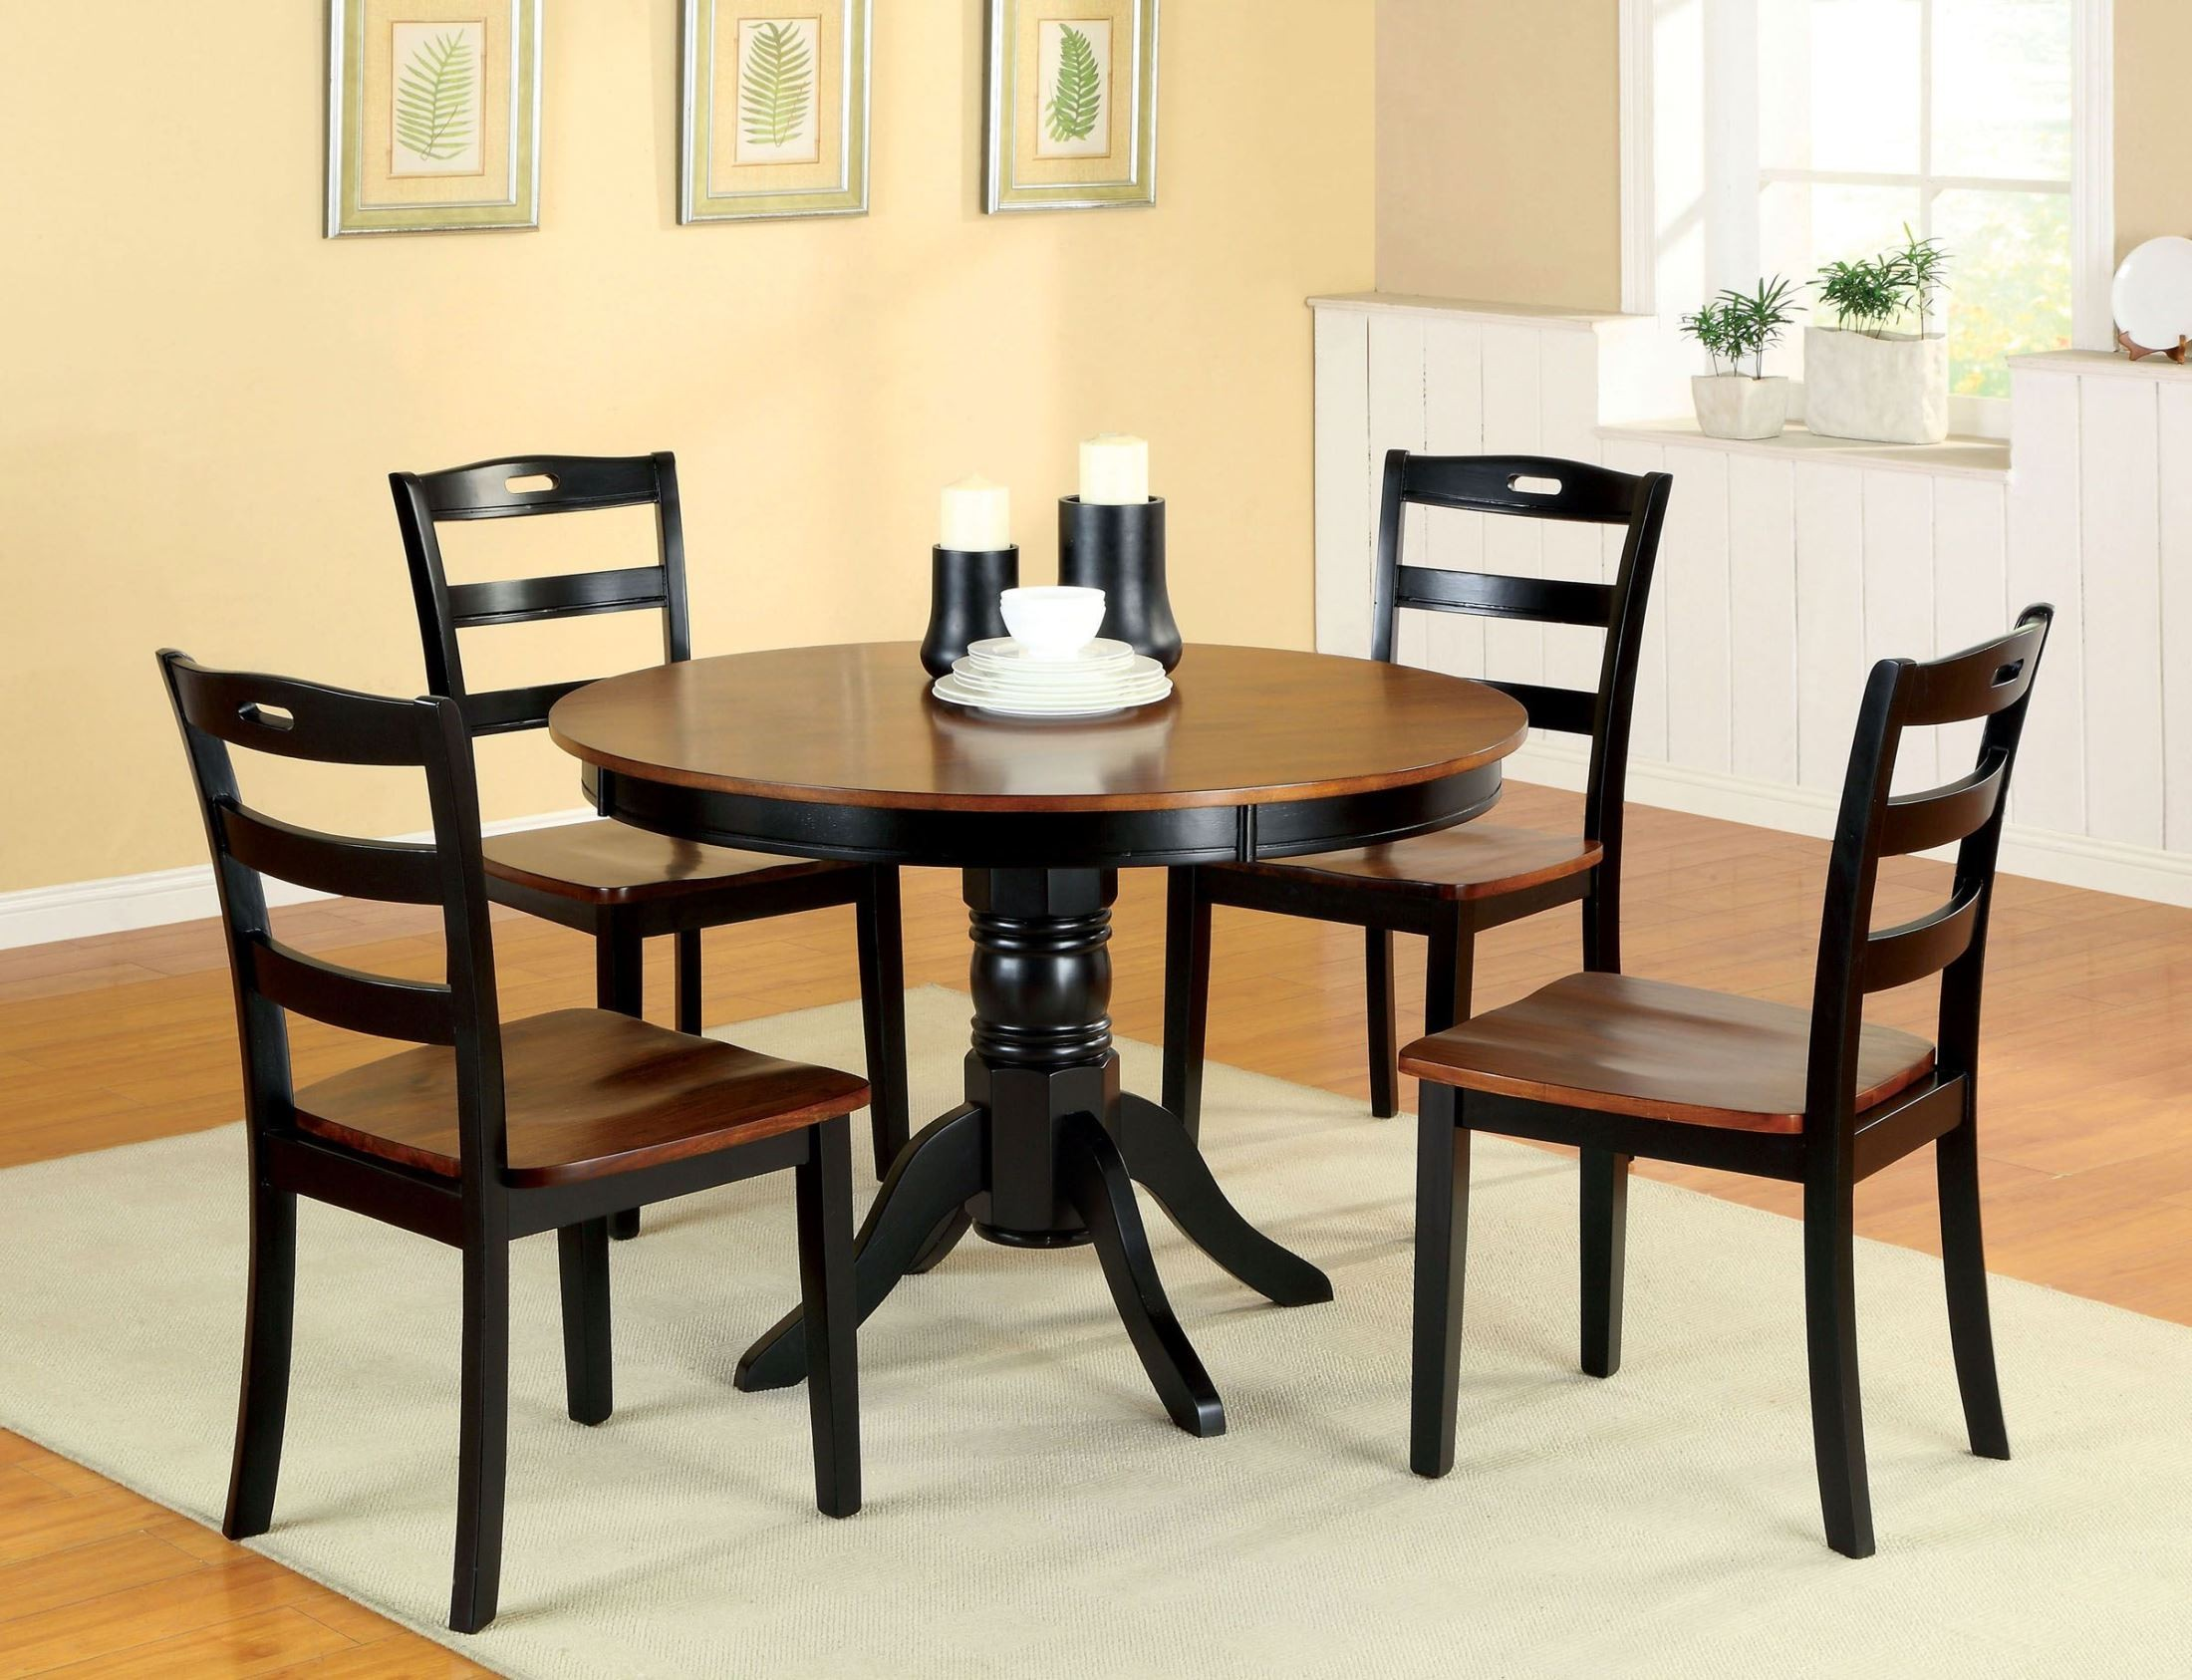 johnstown antique oak and black round pedestal dining room set cm3027rt furniture of america. Black Bedroom Furniture Sets. Home Design Ideas